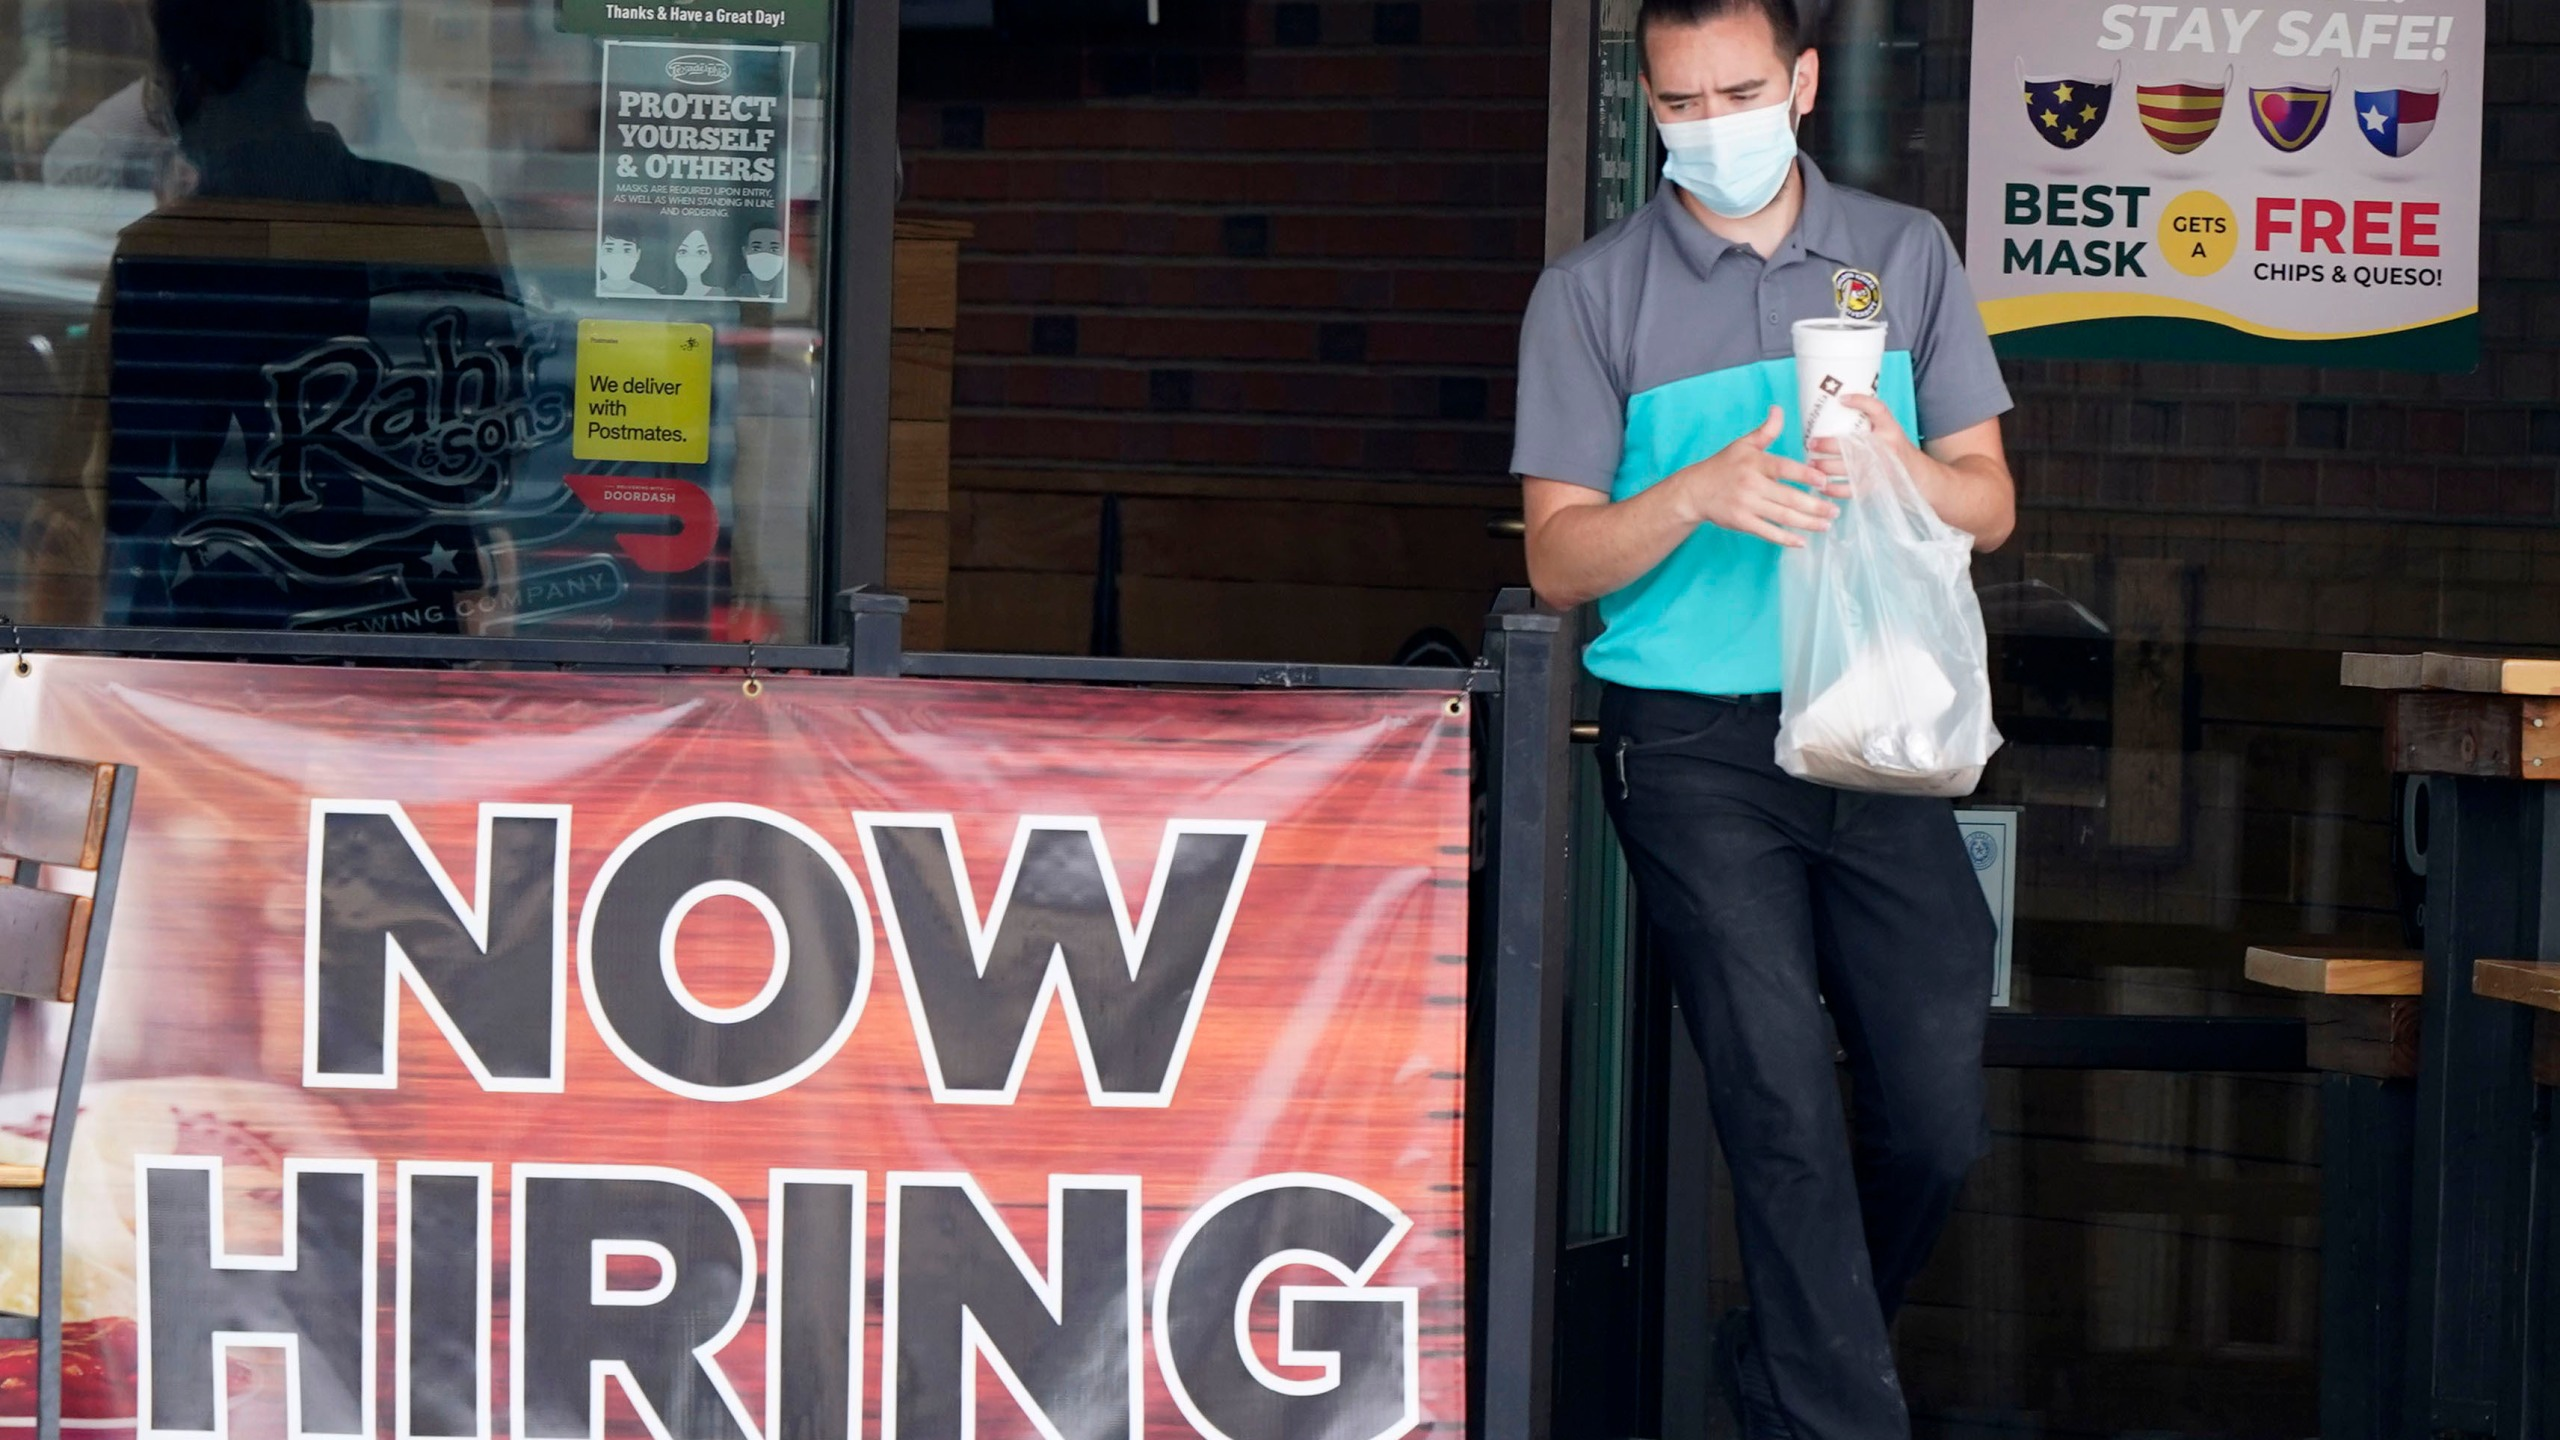 In this Sept. 2, 2020 file photo, a customer wears a face mask as they carry their order past a now hiring sign at an eatery in Richardson, Texas. (AP Photo/LM Otero, File)